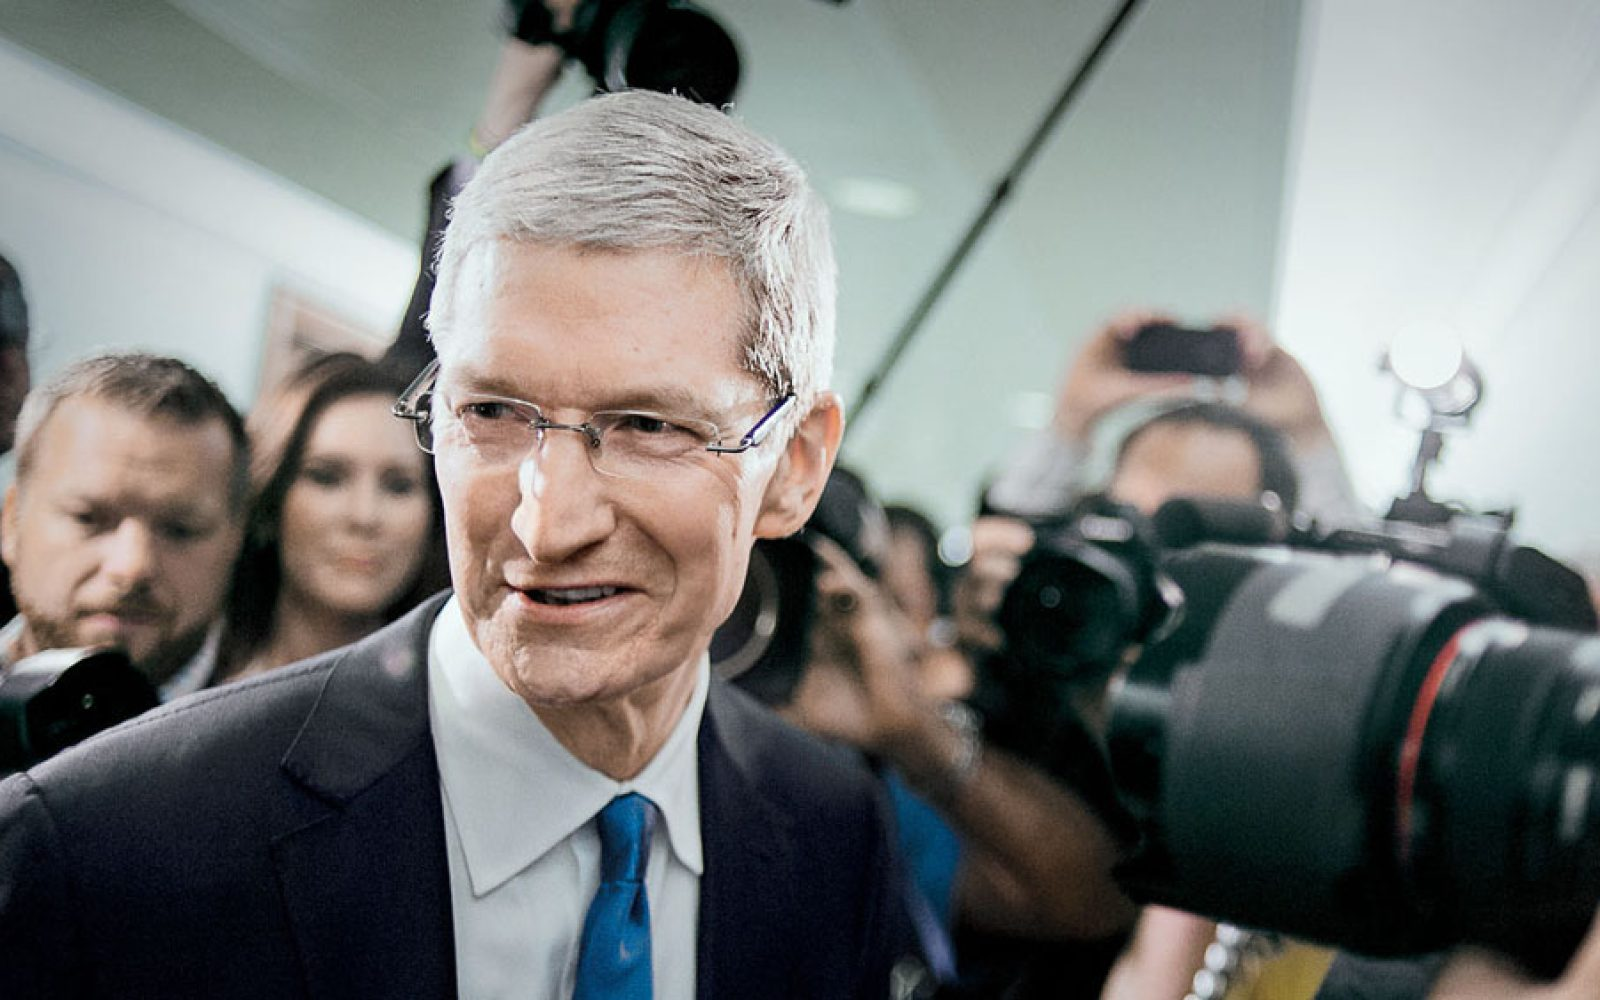 FastCo interview: Tim Cook talks Apple philosophy/legacy, Apple watch skepticism, new Campus & more